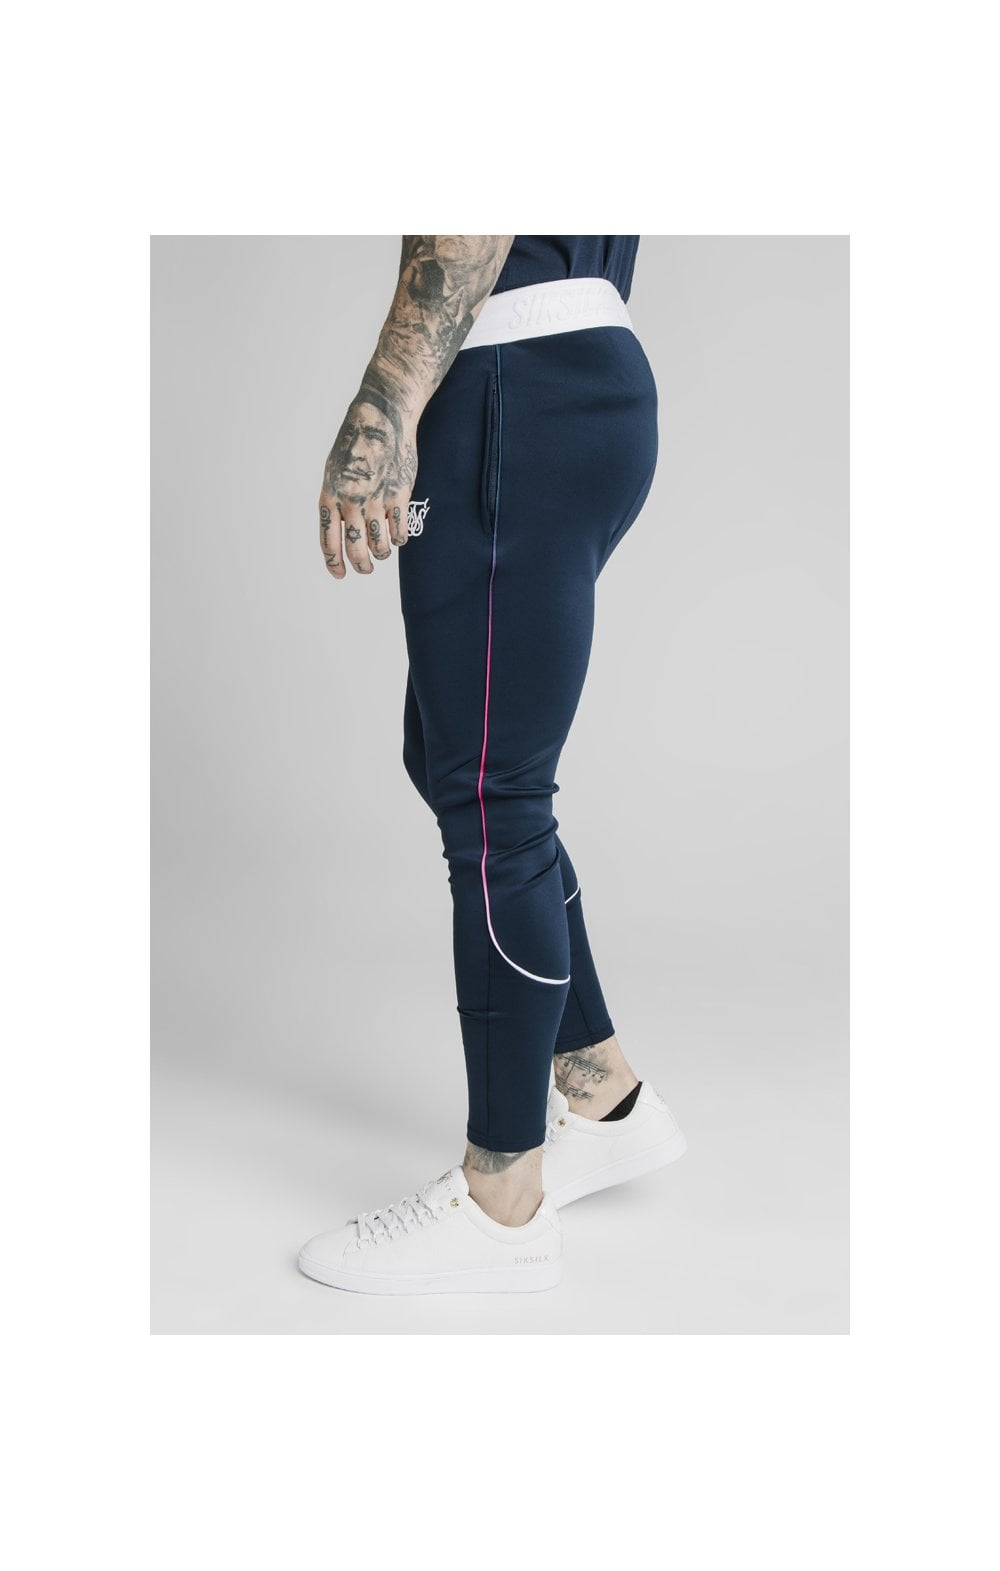 Load image into Gallery viewer, SikSilk Athlete Prestige Fade Track Pants - Navy (3)